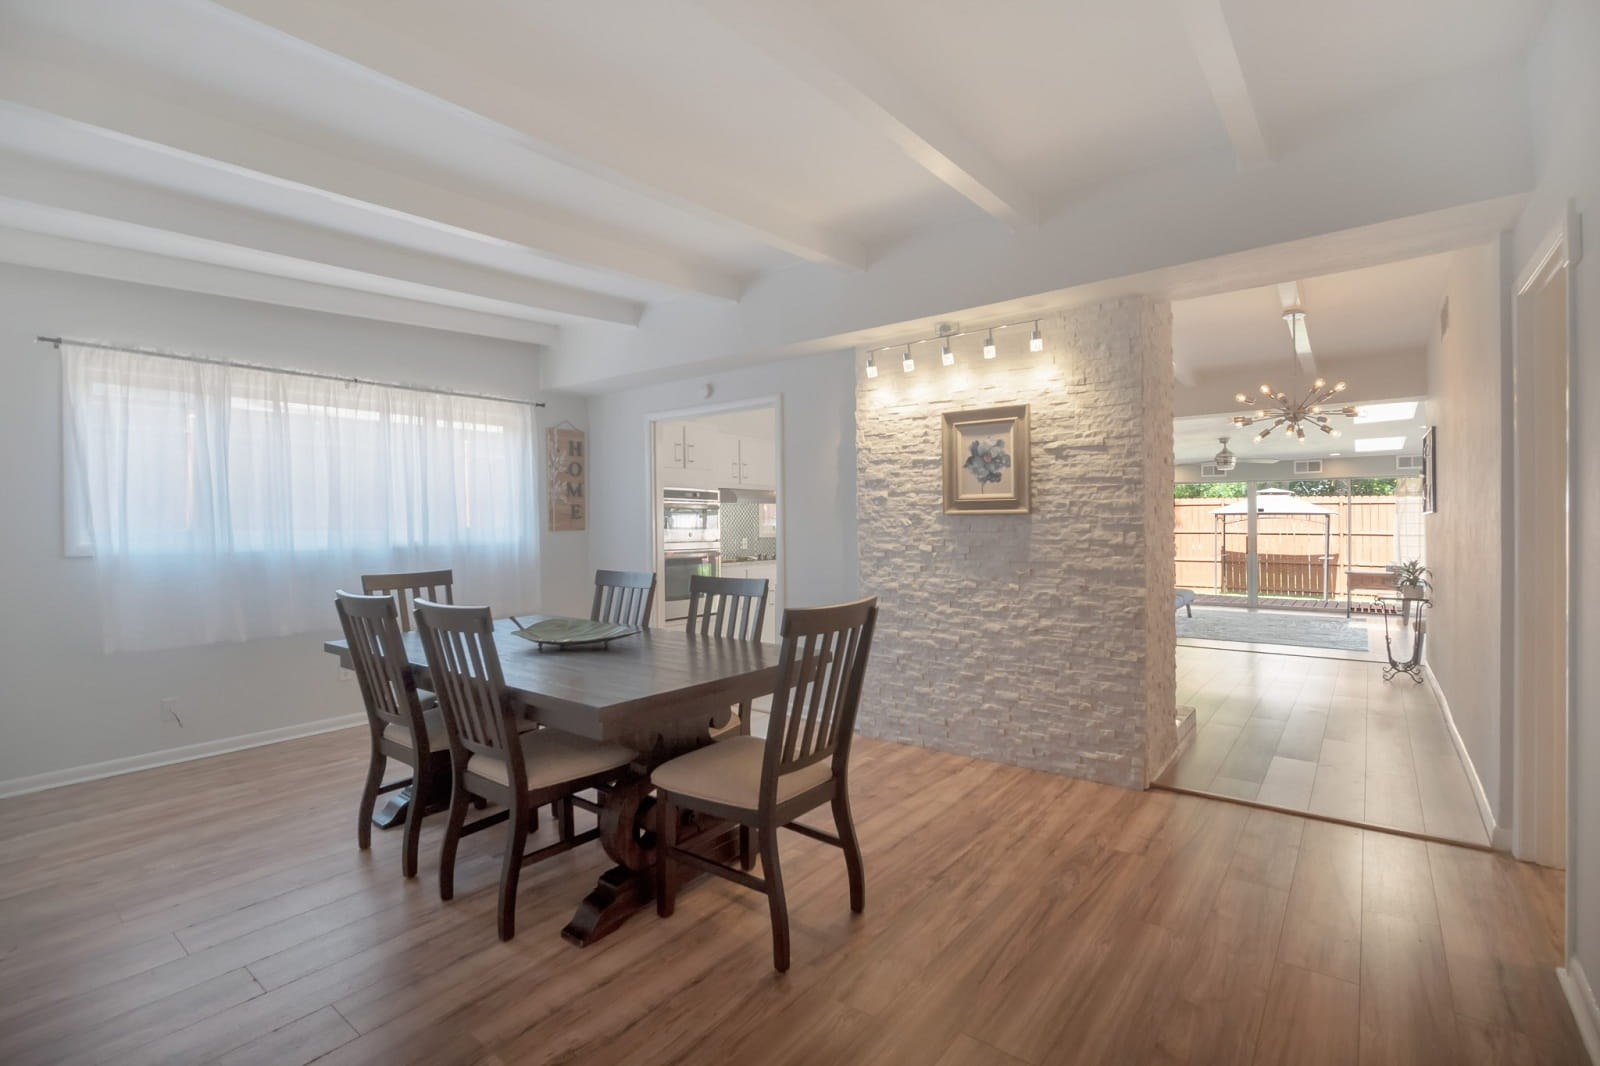 Real Estate Photography in Garland - TX - Dinning Area View